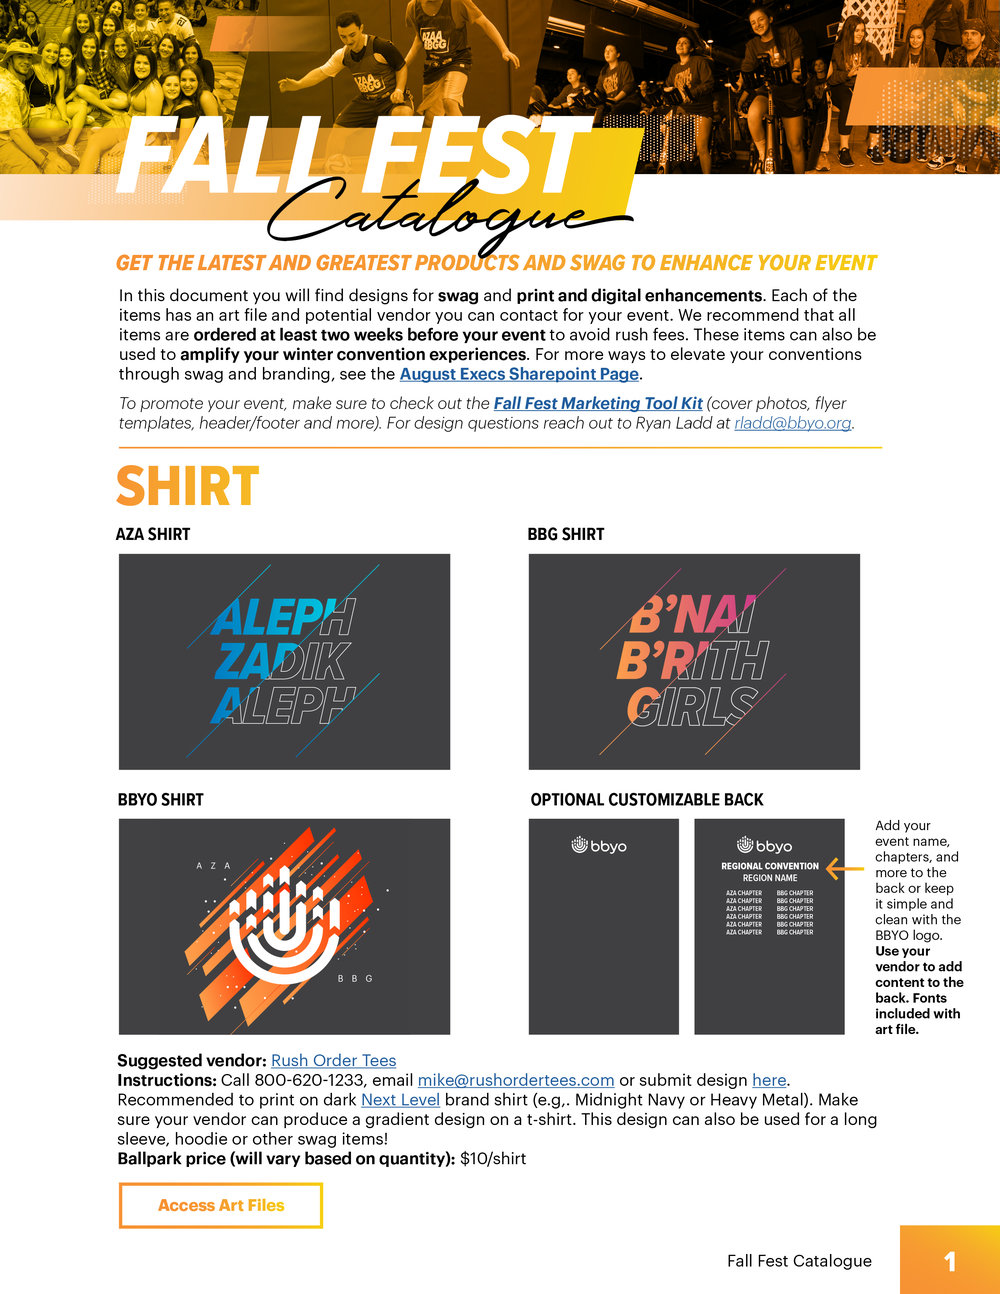 Fall Fest Catalogue   Access designs for swag, print and digital enhancements for Fall Fest events including  banners, posters, event specific merchandise and more . Each item has an art file and potential vendor you can contact for your event. We recommend that all items are ordered at least two weeks before your event to avoid rush fees. These items can also be used to amplify your winter convention experiences.    Art work can be customized and adapted to suit items not in the guide.